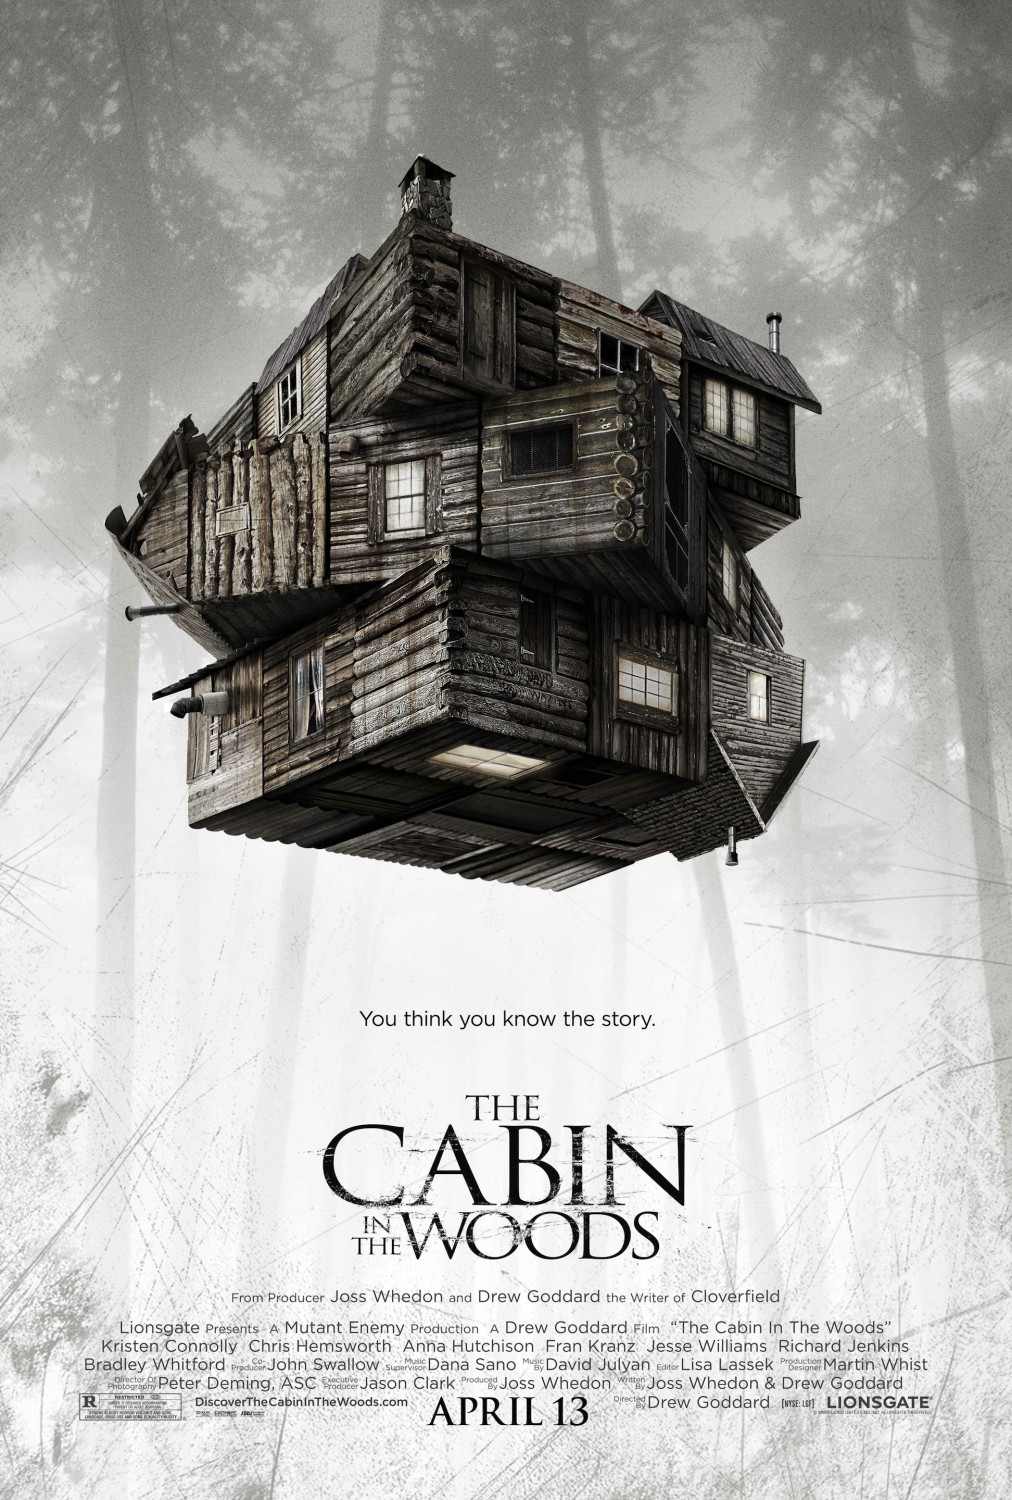 167 - The Cabin In The Woods 2019 - Căn Nhà Gỗ Trong Rừng